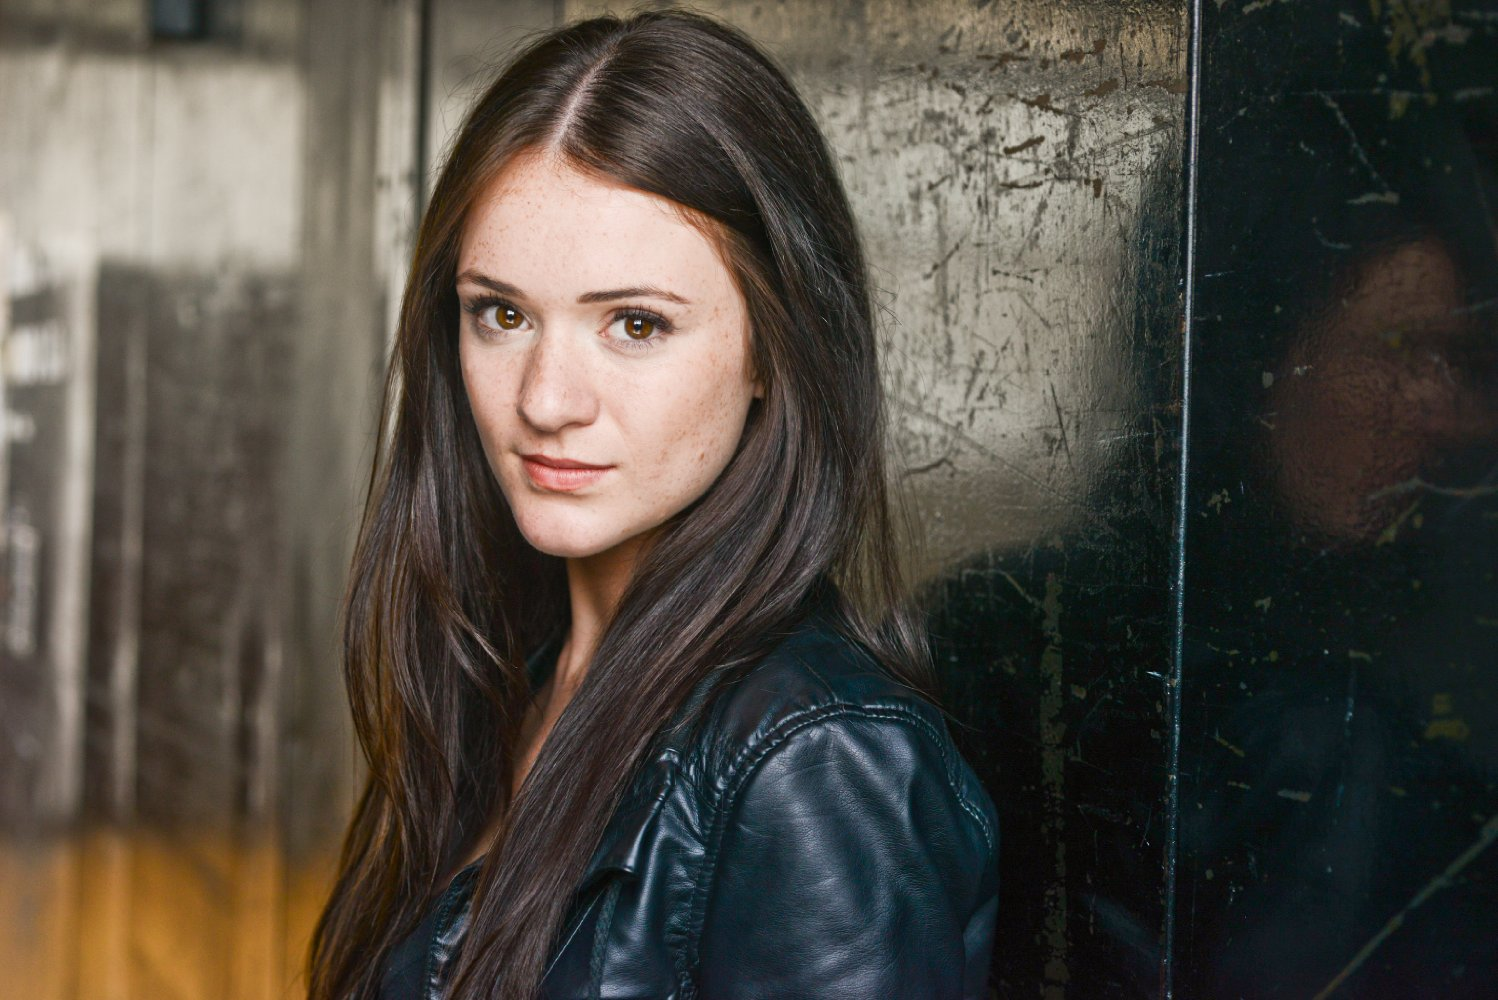 Chandler Loryn movies list and roles (Good Witch - Season 5, Reign